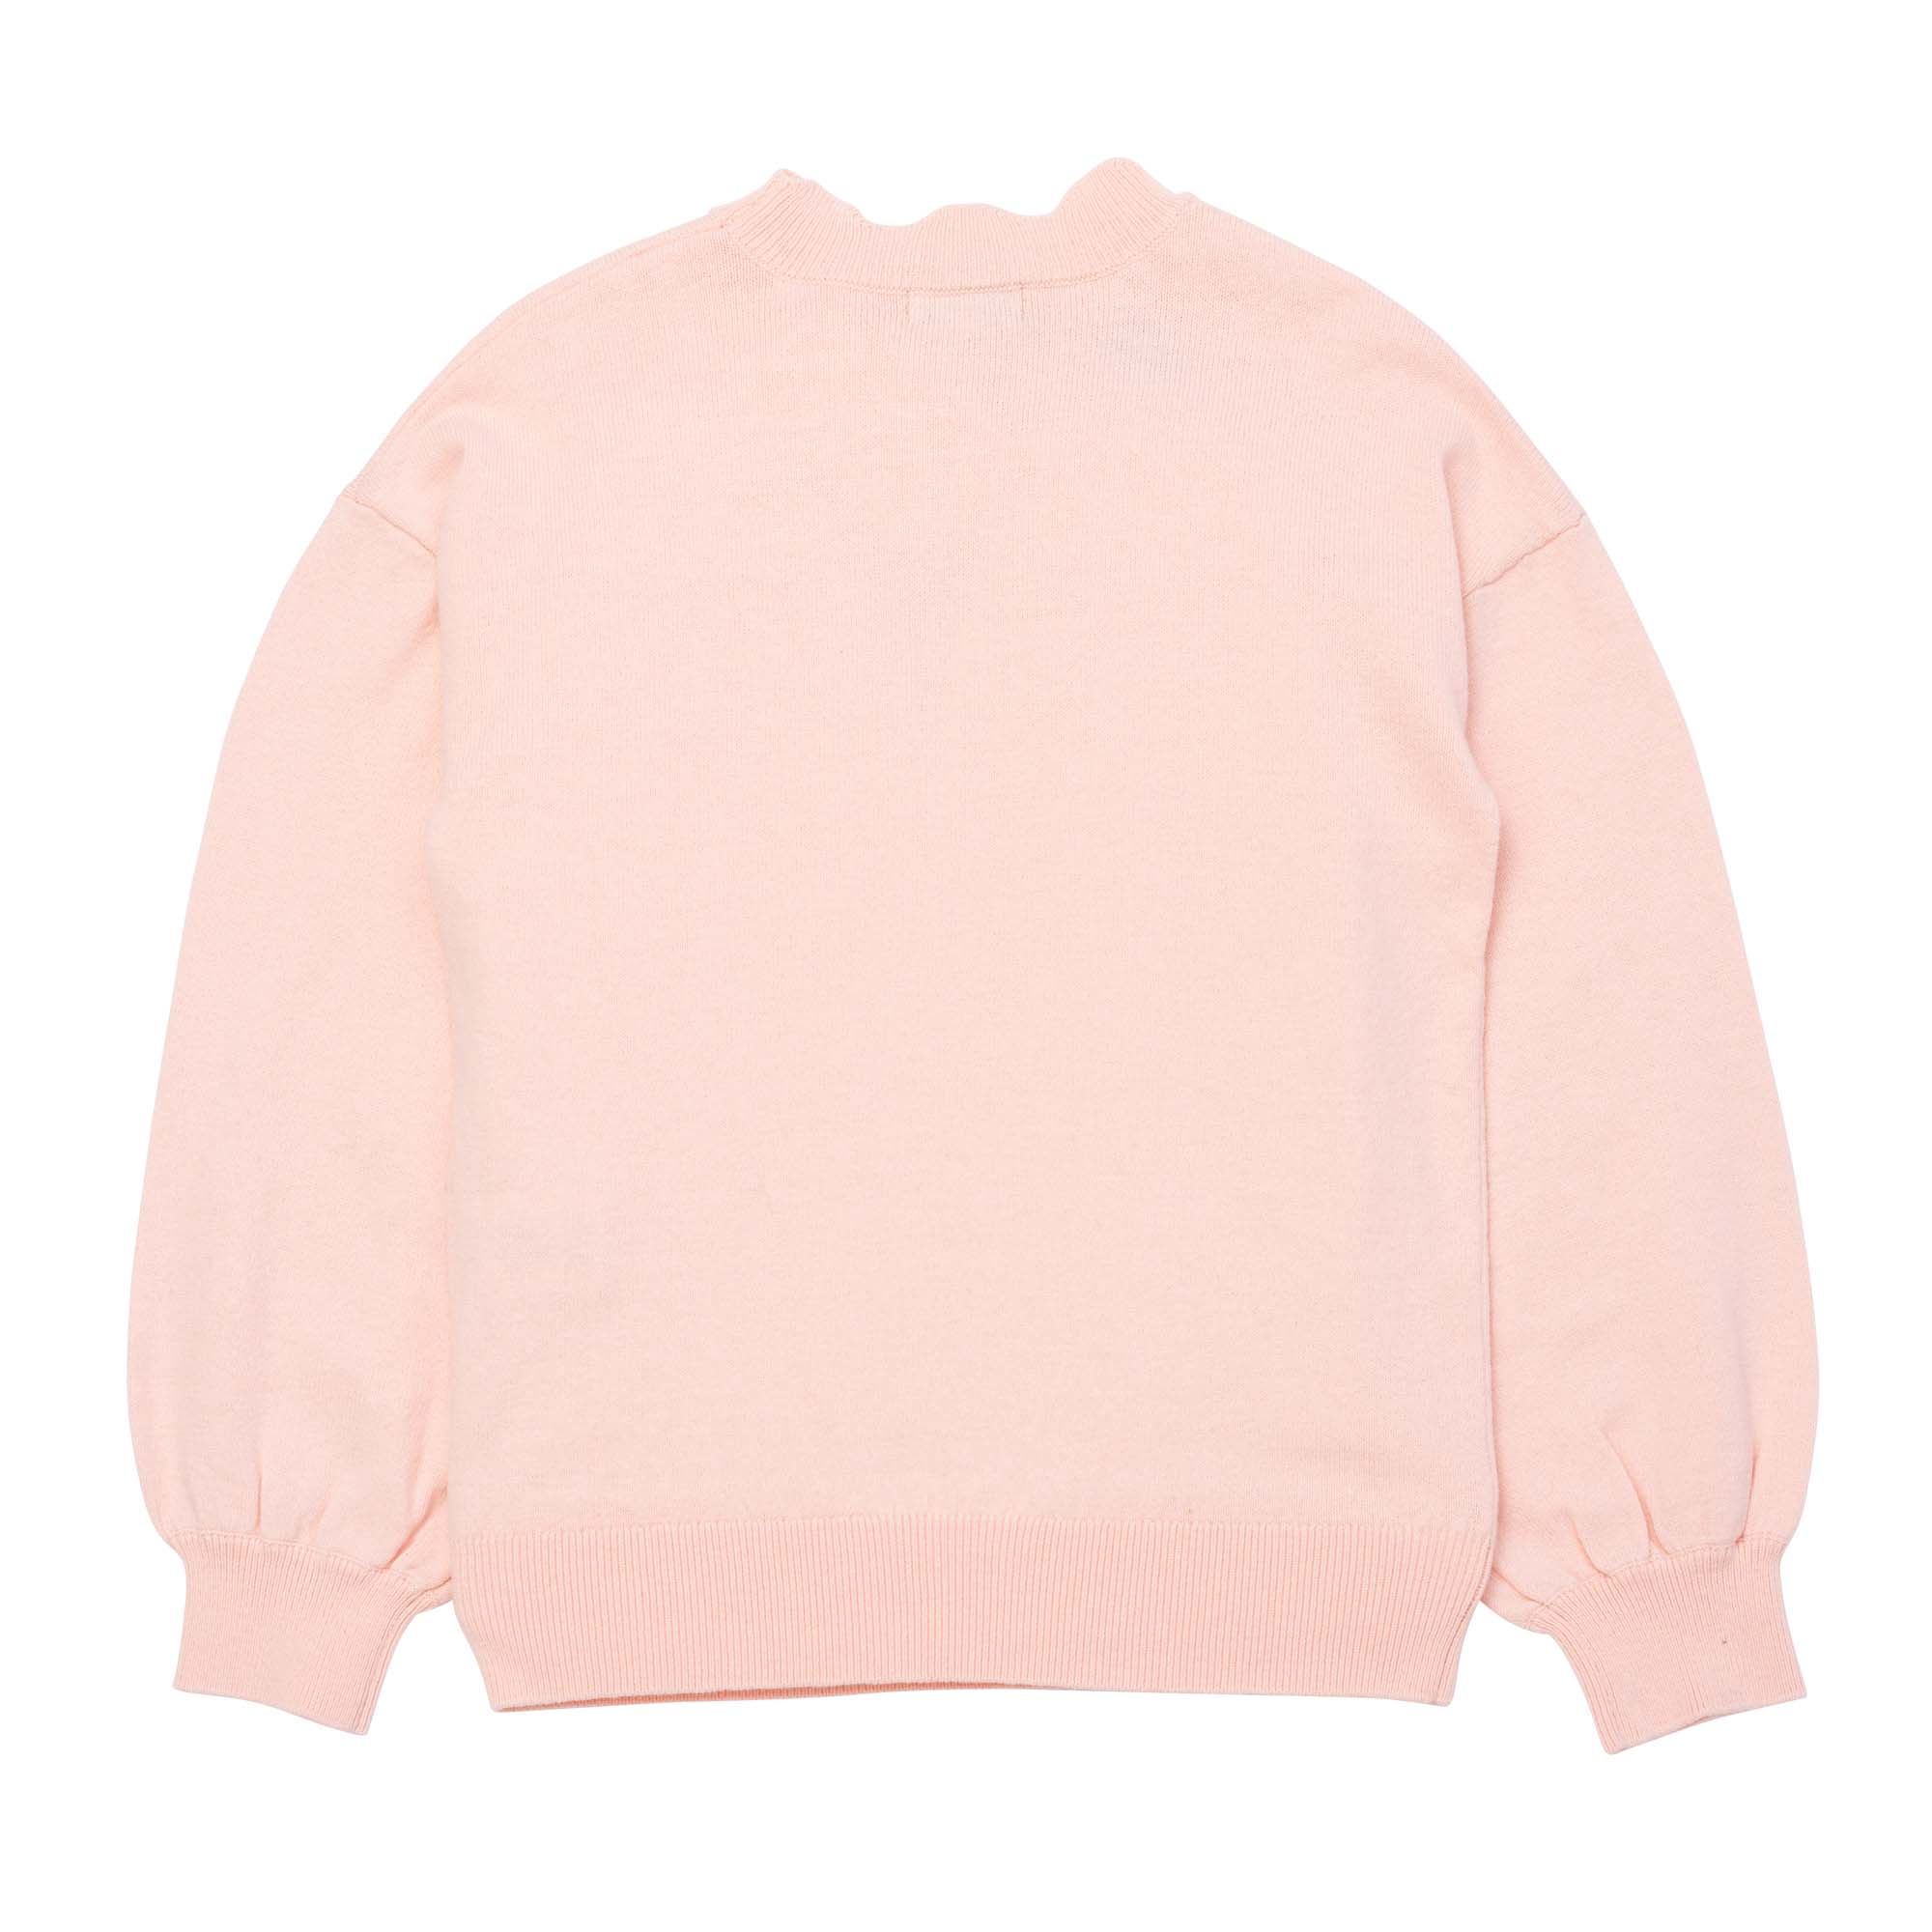 Cotton and cashmere sweater KENZO KIDS for GIRL